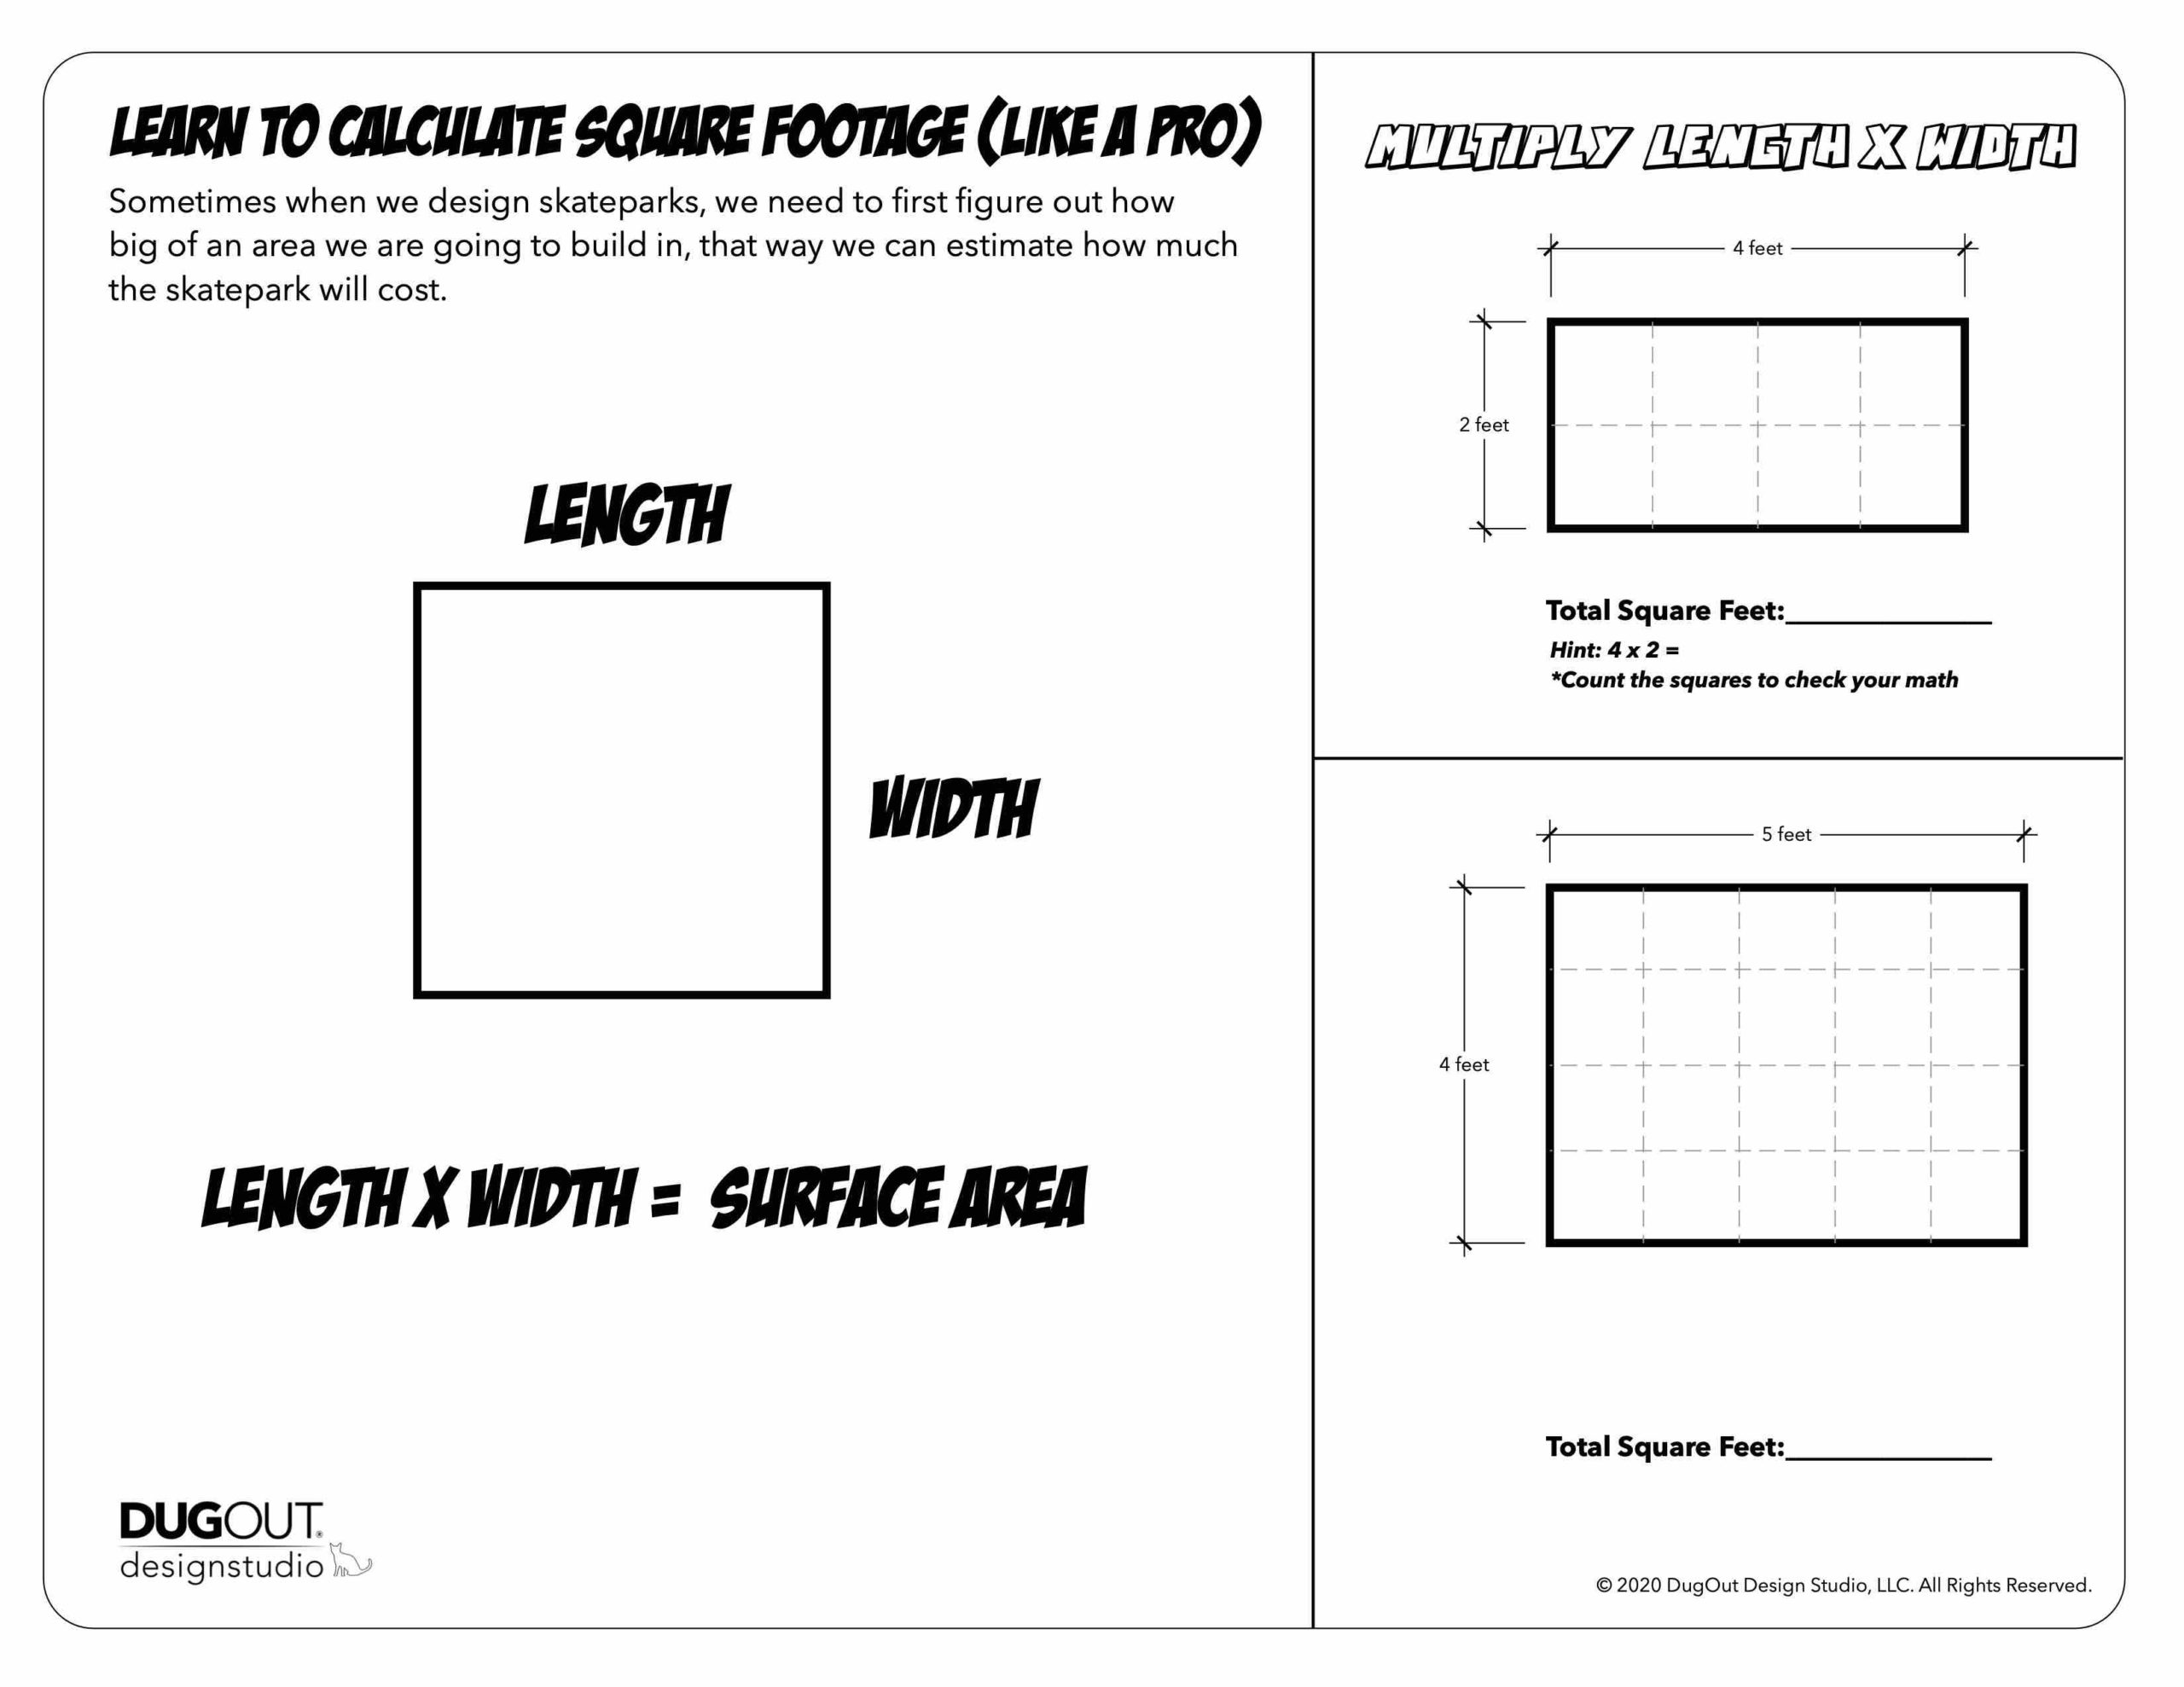 Skatepark Design Activity: Calculate square footage